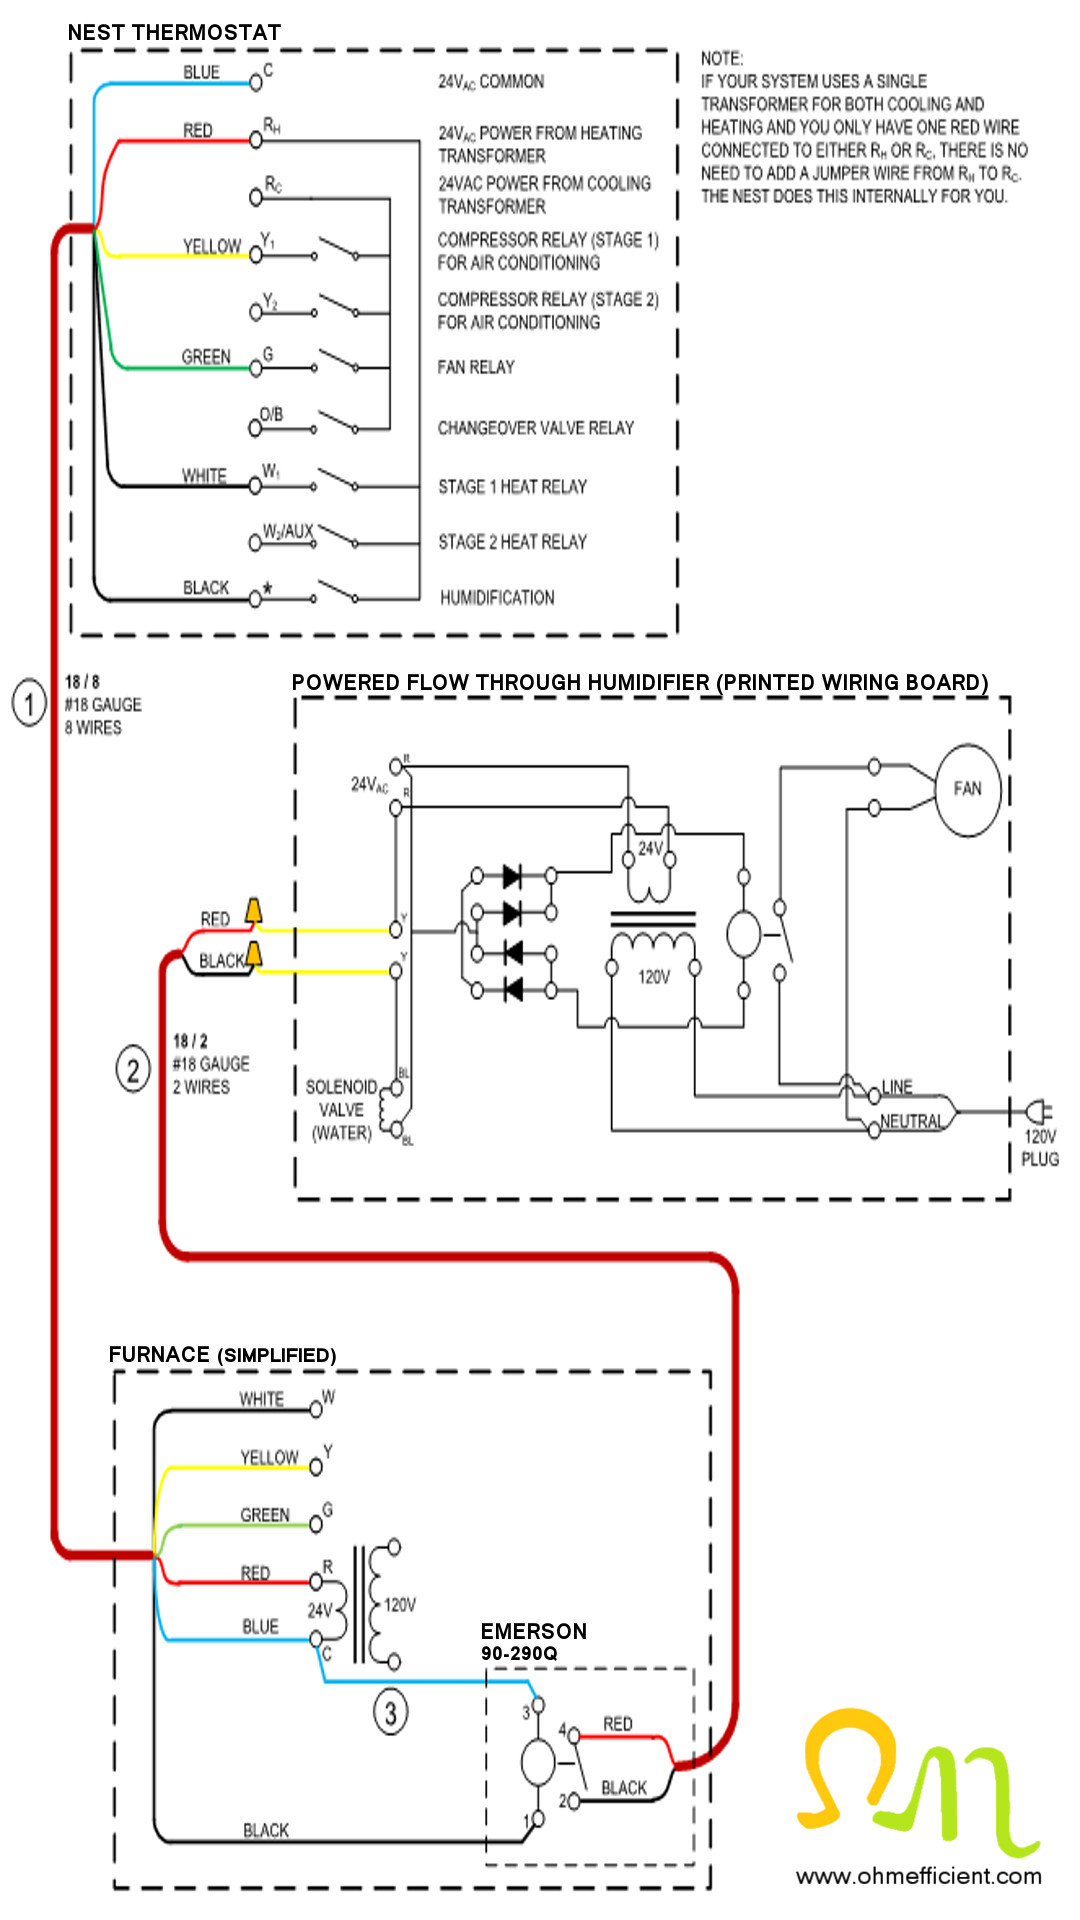 The Nest Thermostat Wiring Diagram   Wiring Diagram - Nest 1 Wiring Diagram